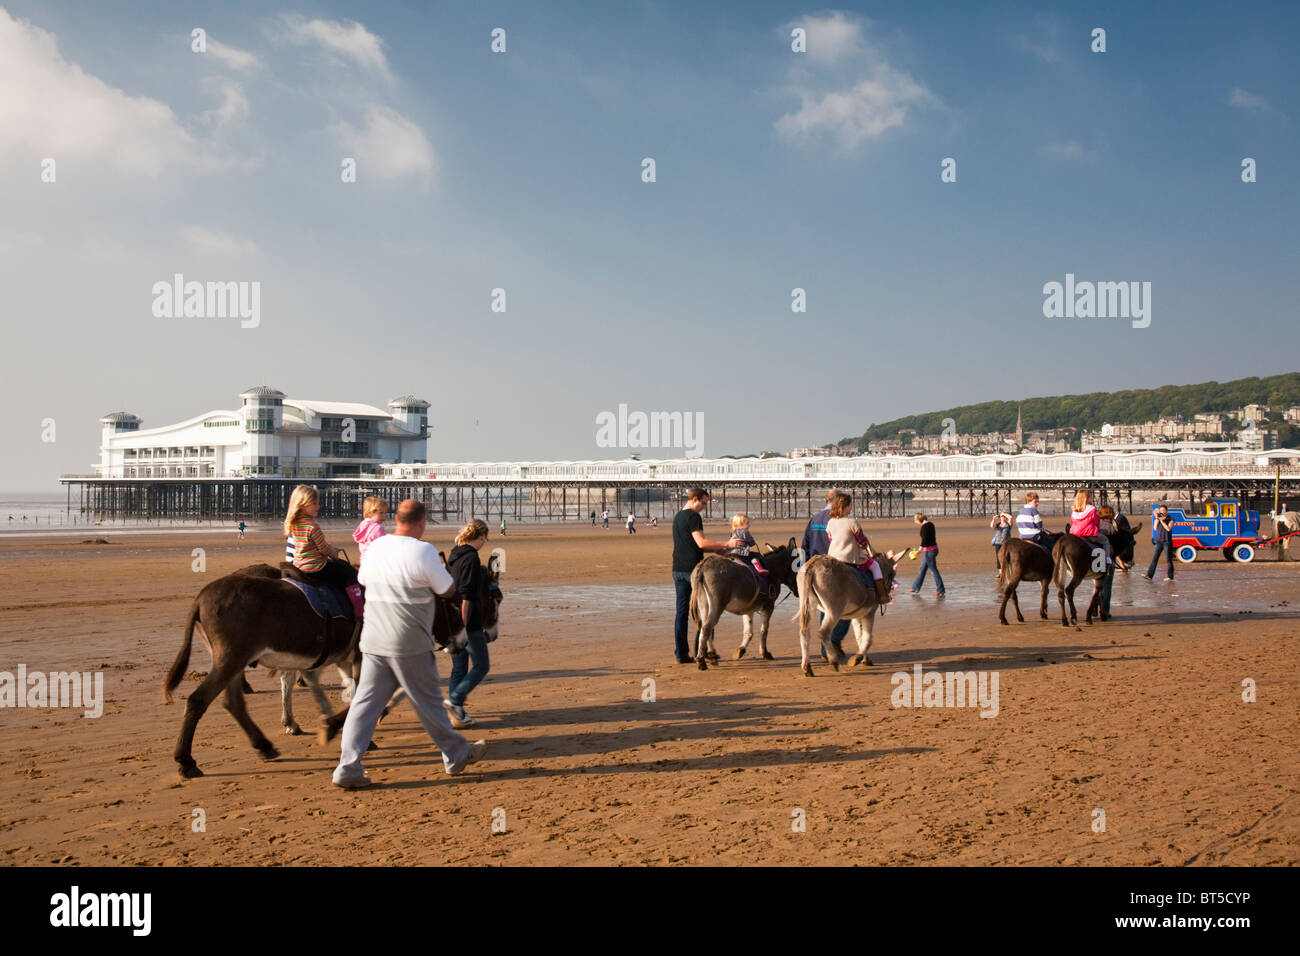 Traditional donkey rides on the beach at Weston-Super-Mare, Somerset, Uk - Stock Image